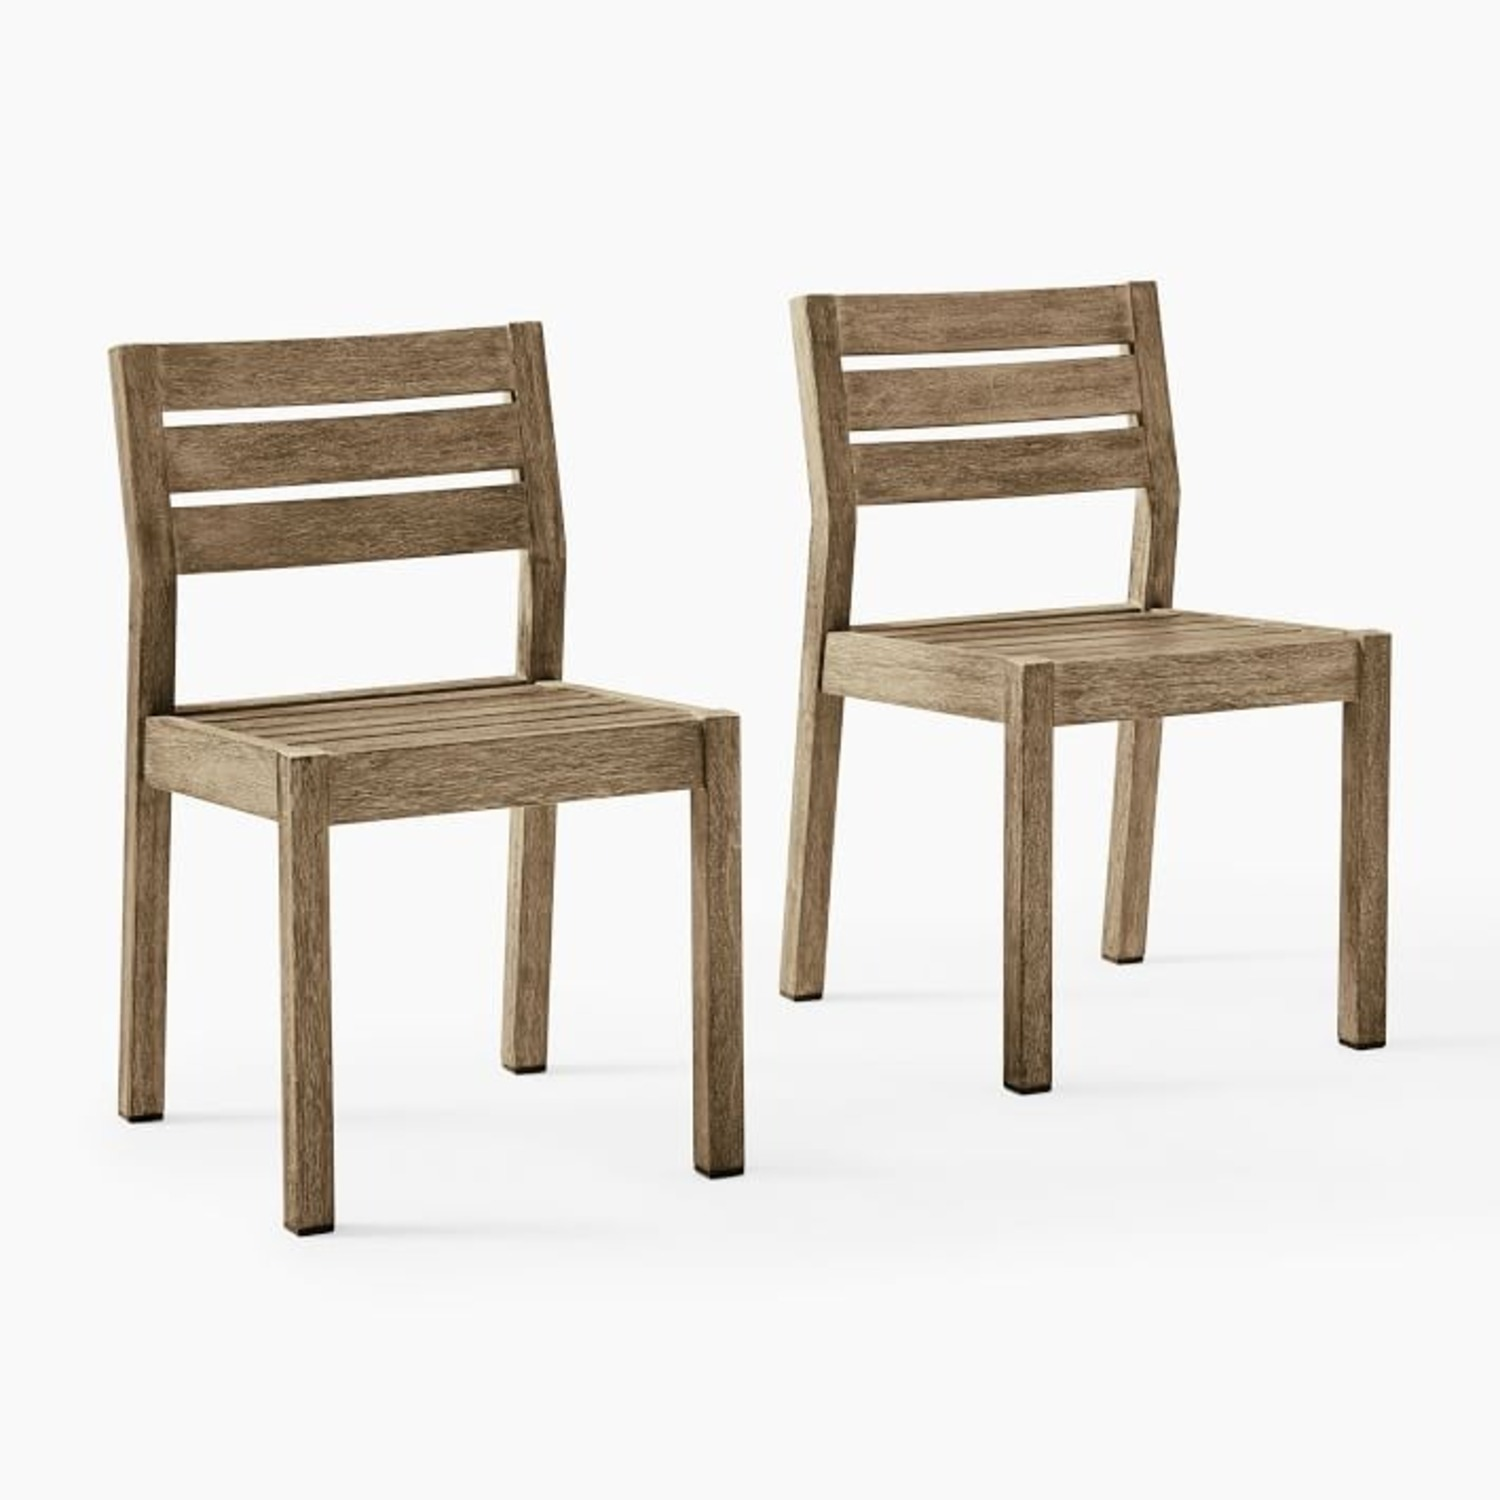 West Elm Portside Outdoor Dining Chair, Set of 2 - image-1